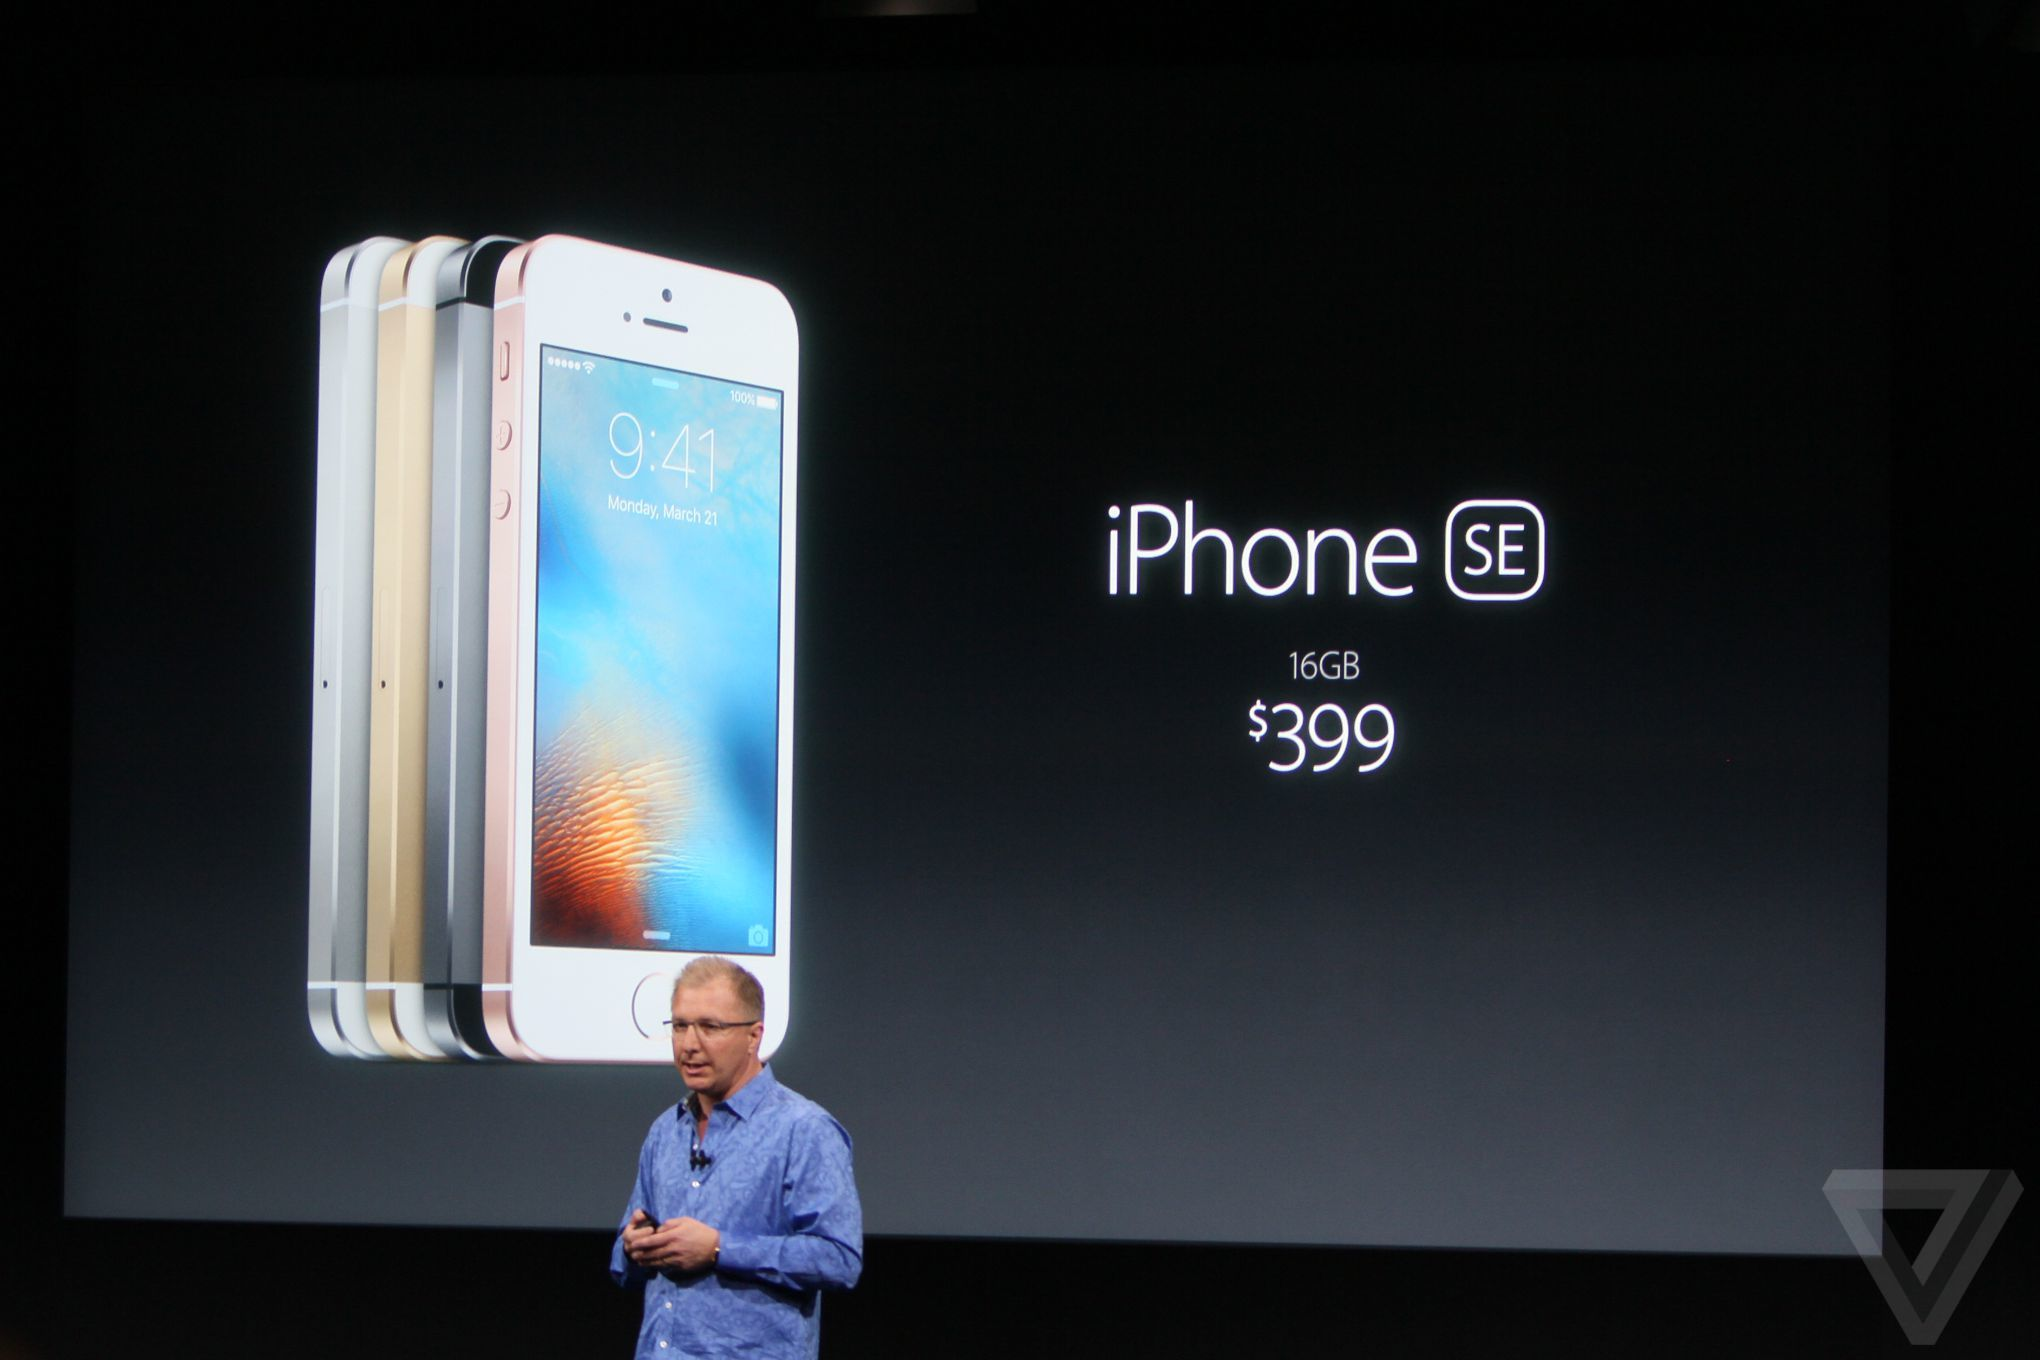 Apple officially introduced the iPhone SE